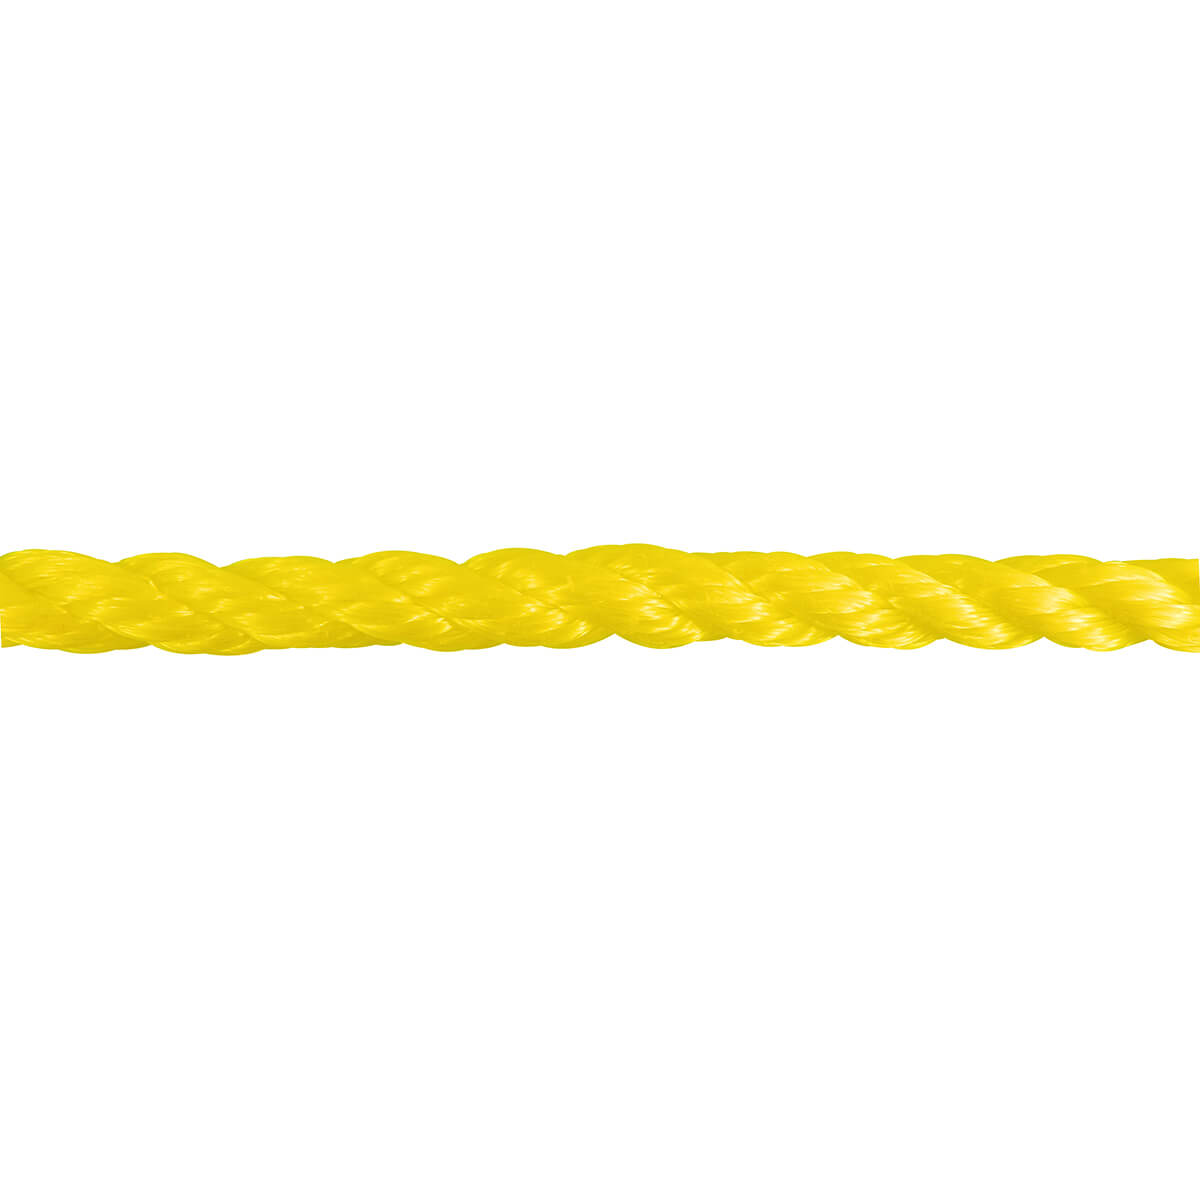 "Polypropylene Twisted Rope - Yellow - 5/16"" (price per foot)"